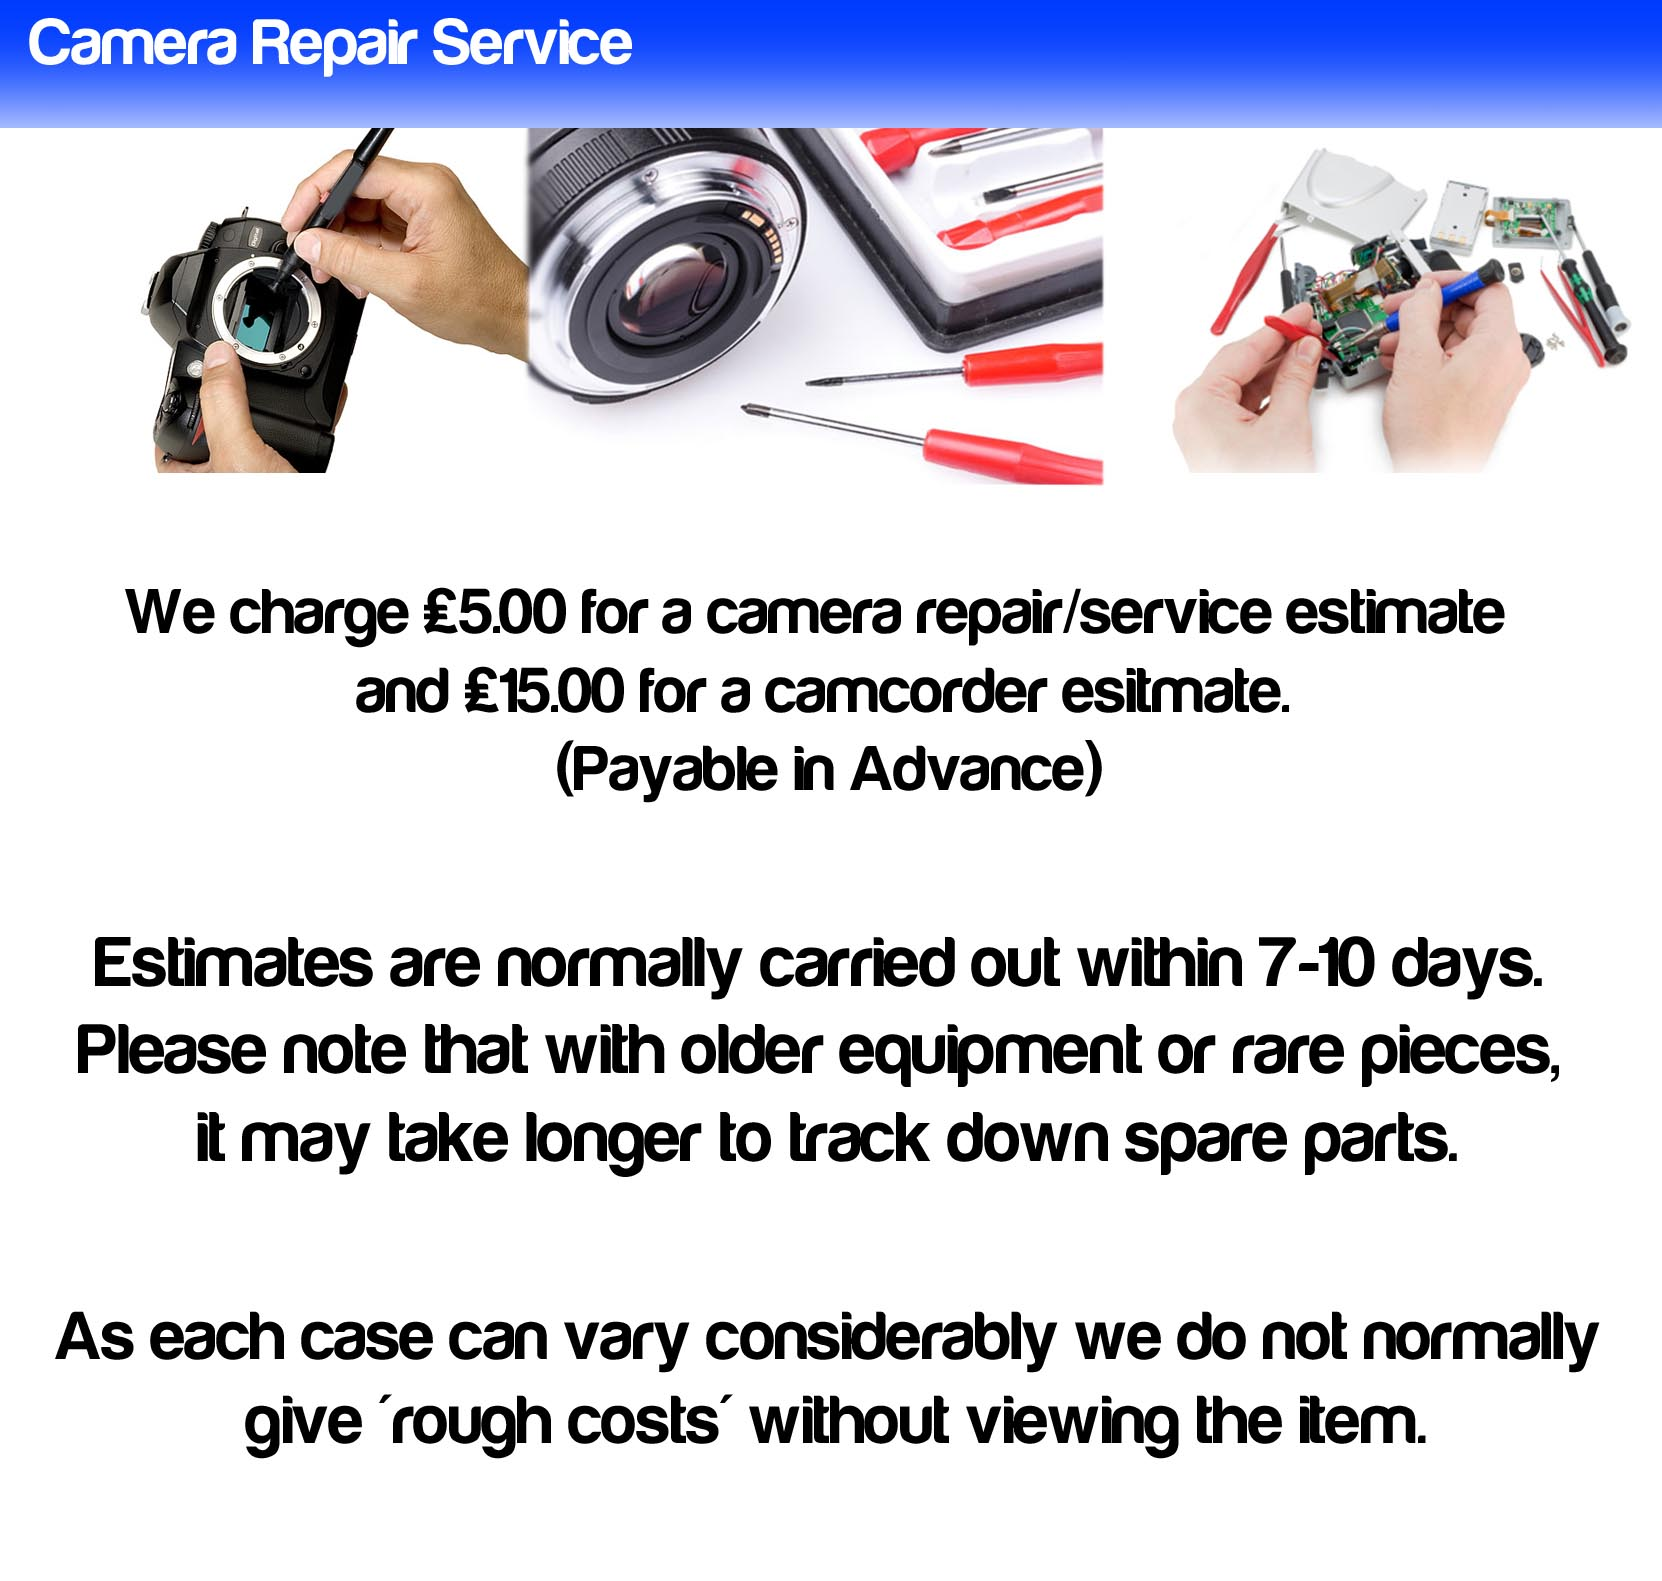 Camera Repair Service: We charge £5 for a camera repair/service estimate. (payable in Advance). Estimates are normally carried out within 7-10 days. Please note that with older equipment or rare pieces, it may take longer to track down the spare parts. As each case can vary considerably, we not normally give rough costs' without viewing the item.